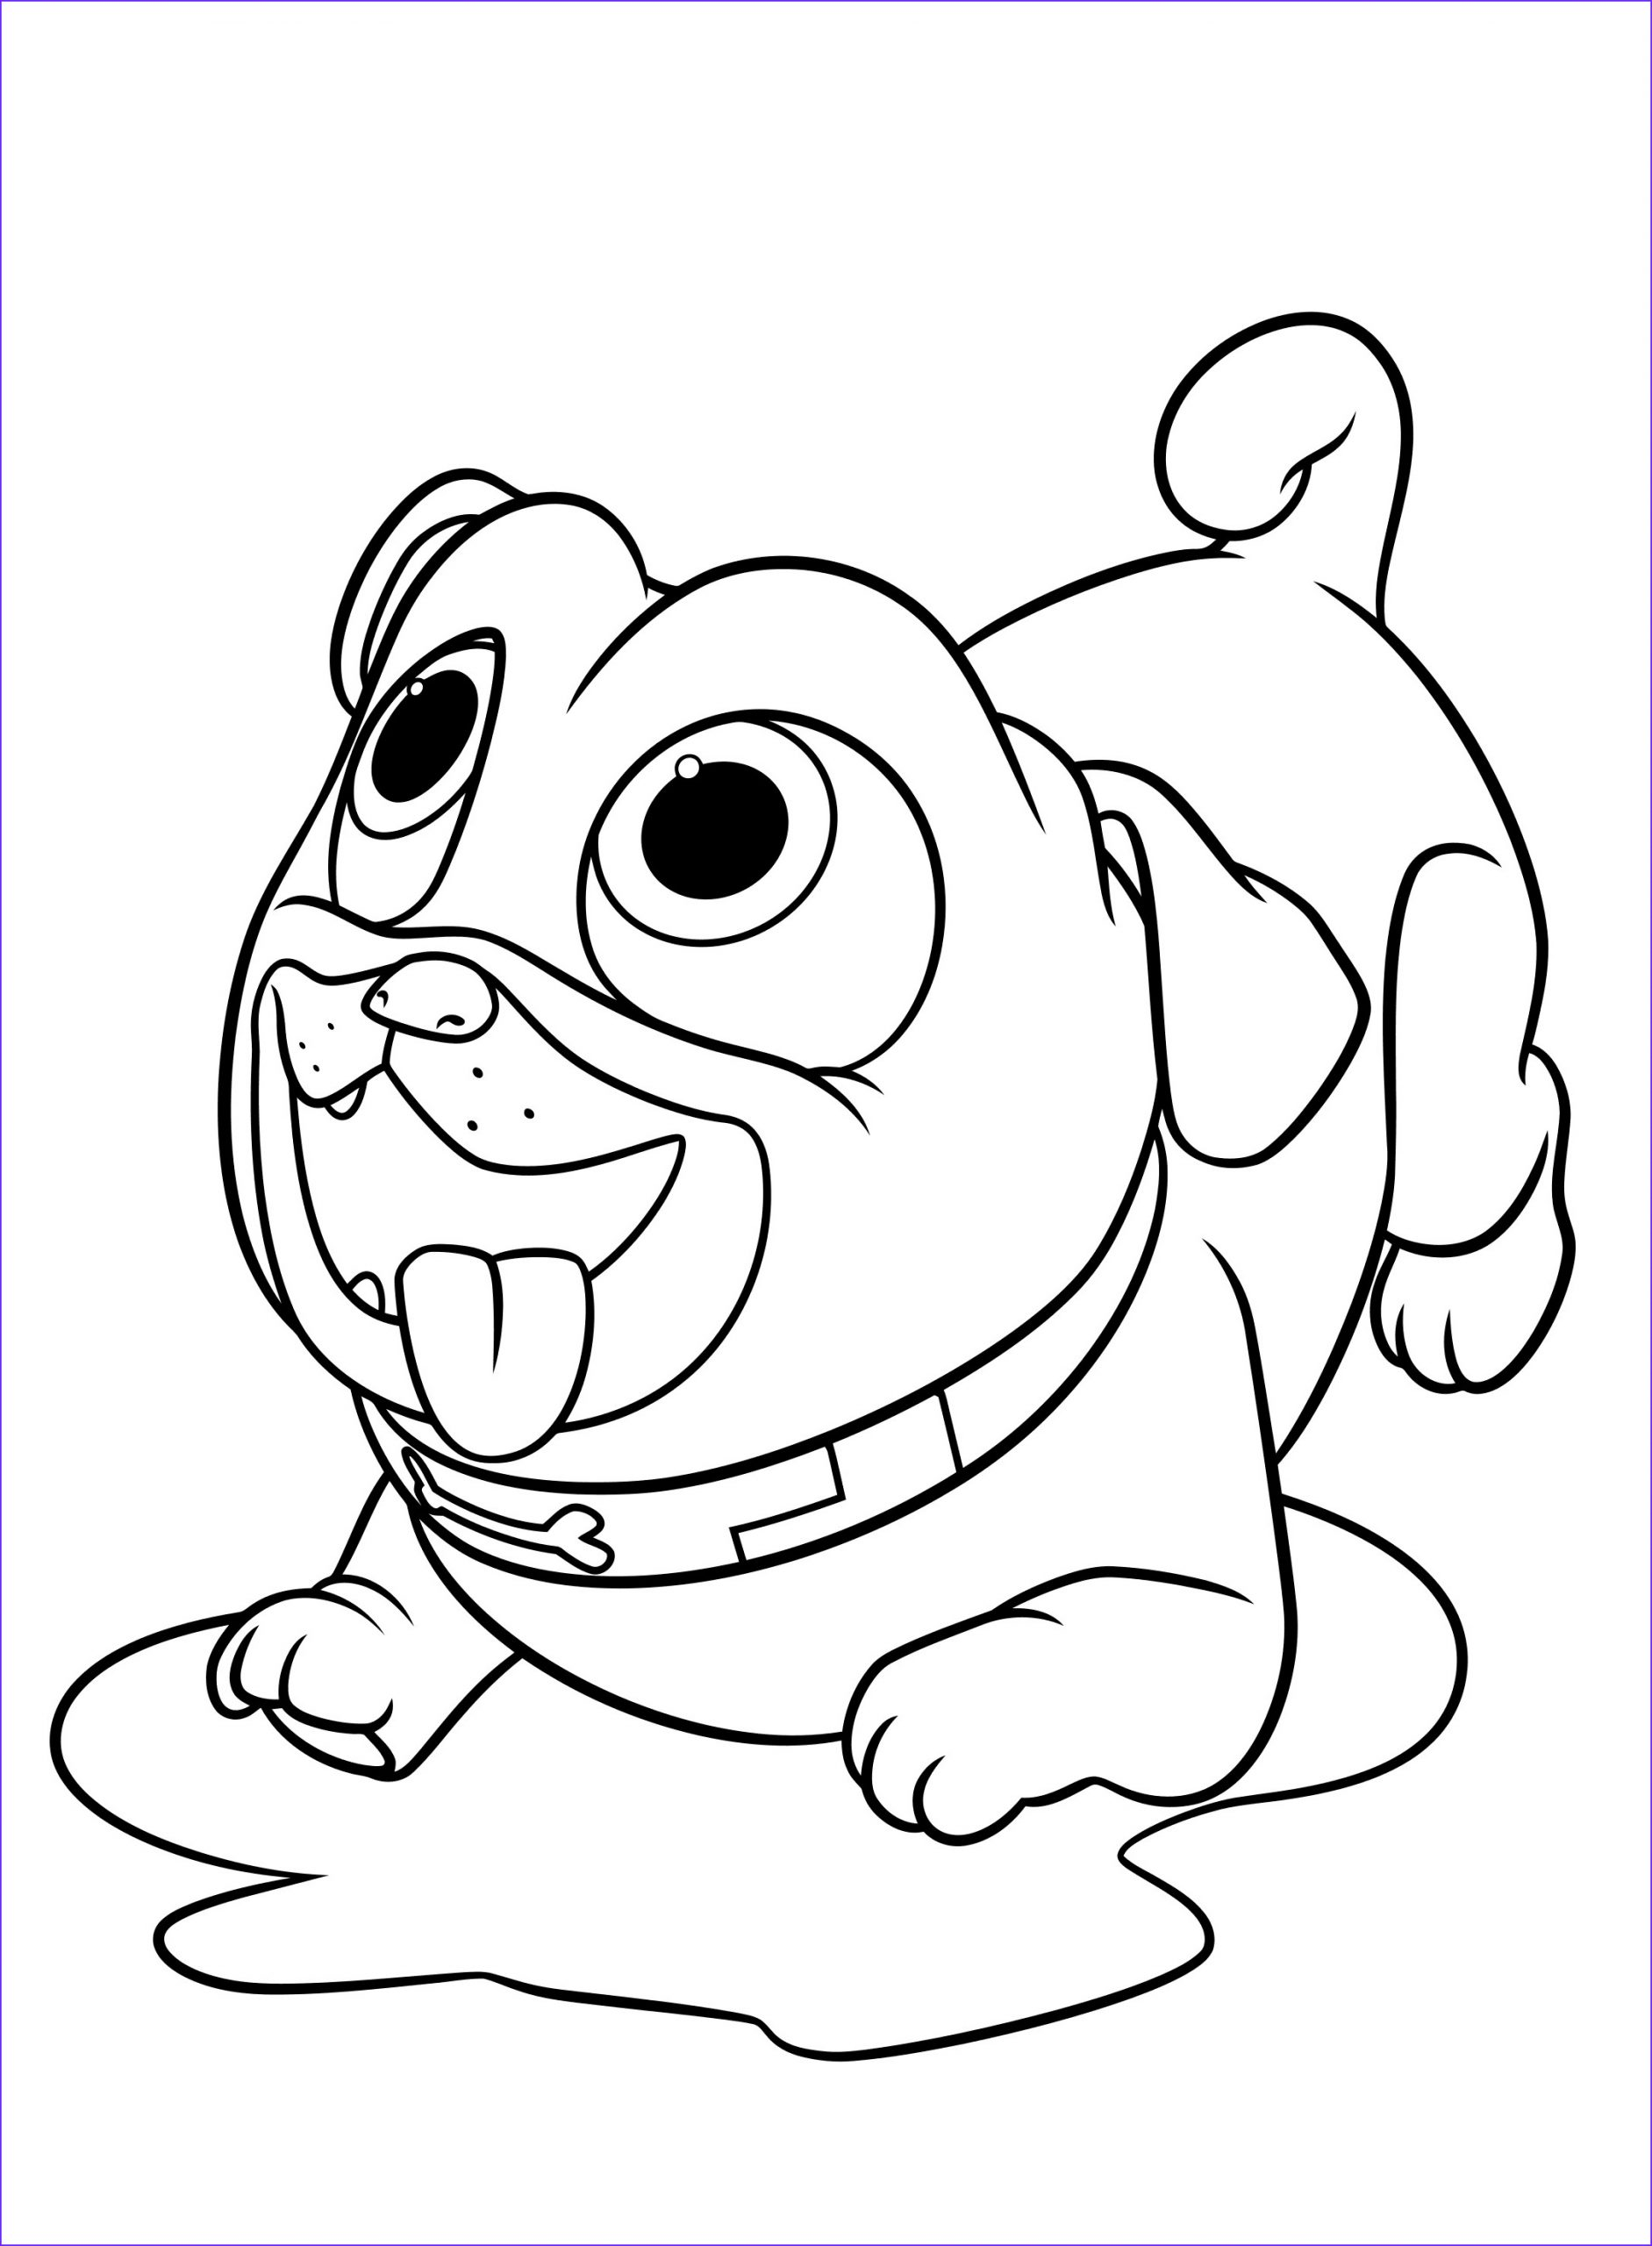 Puppy Coloring Picture Cool Photography Puppy Dog Pals Coloring Pages to and Print for Free